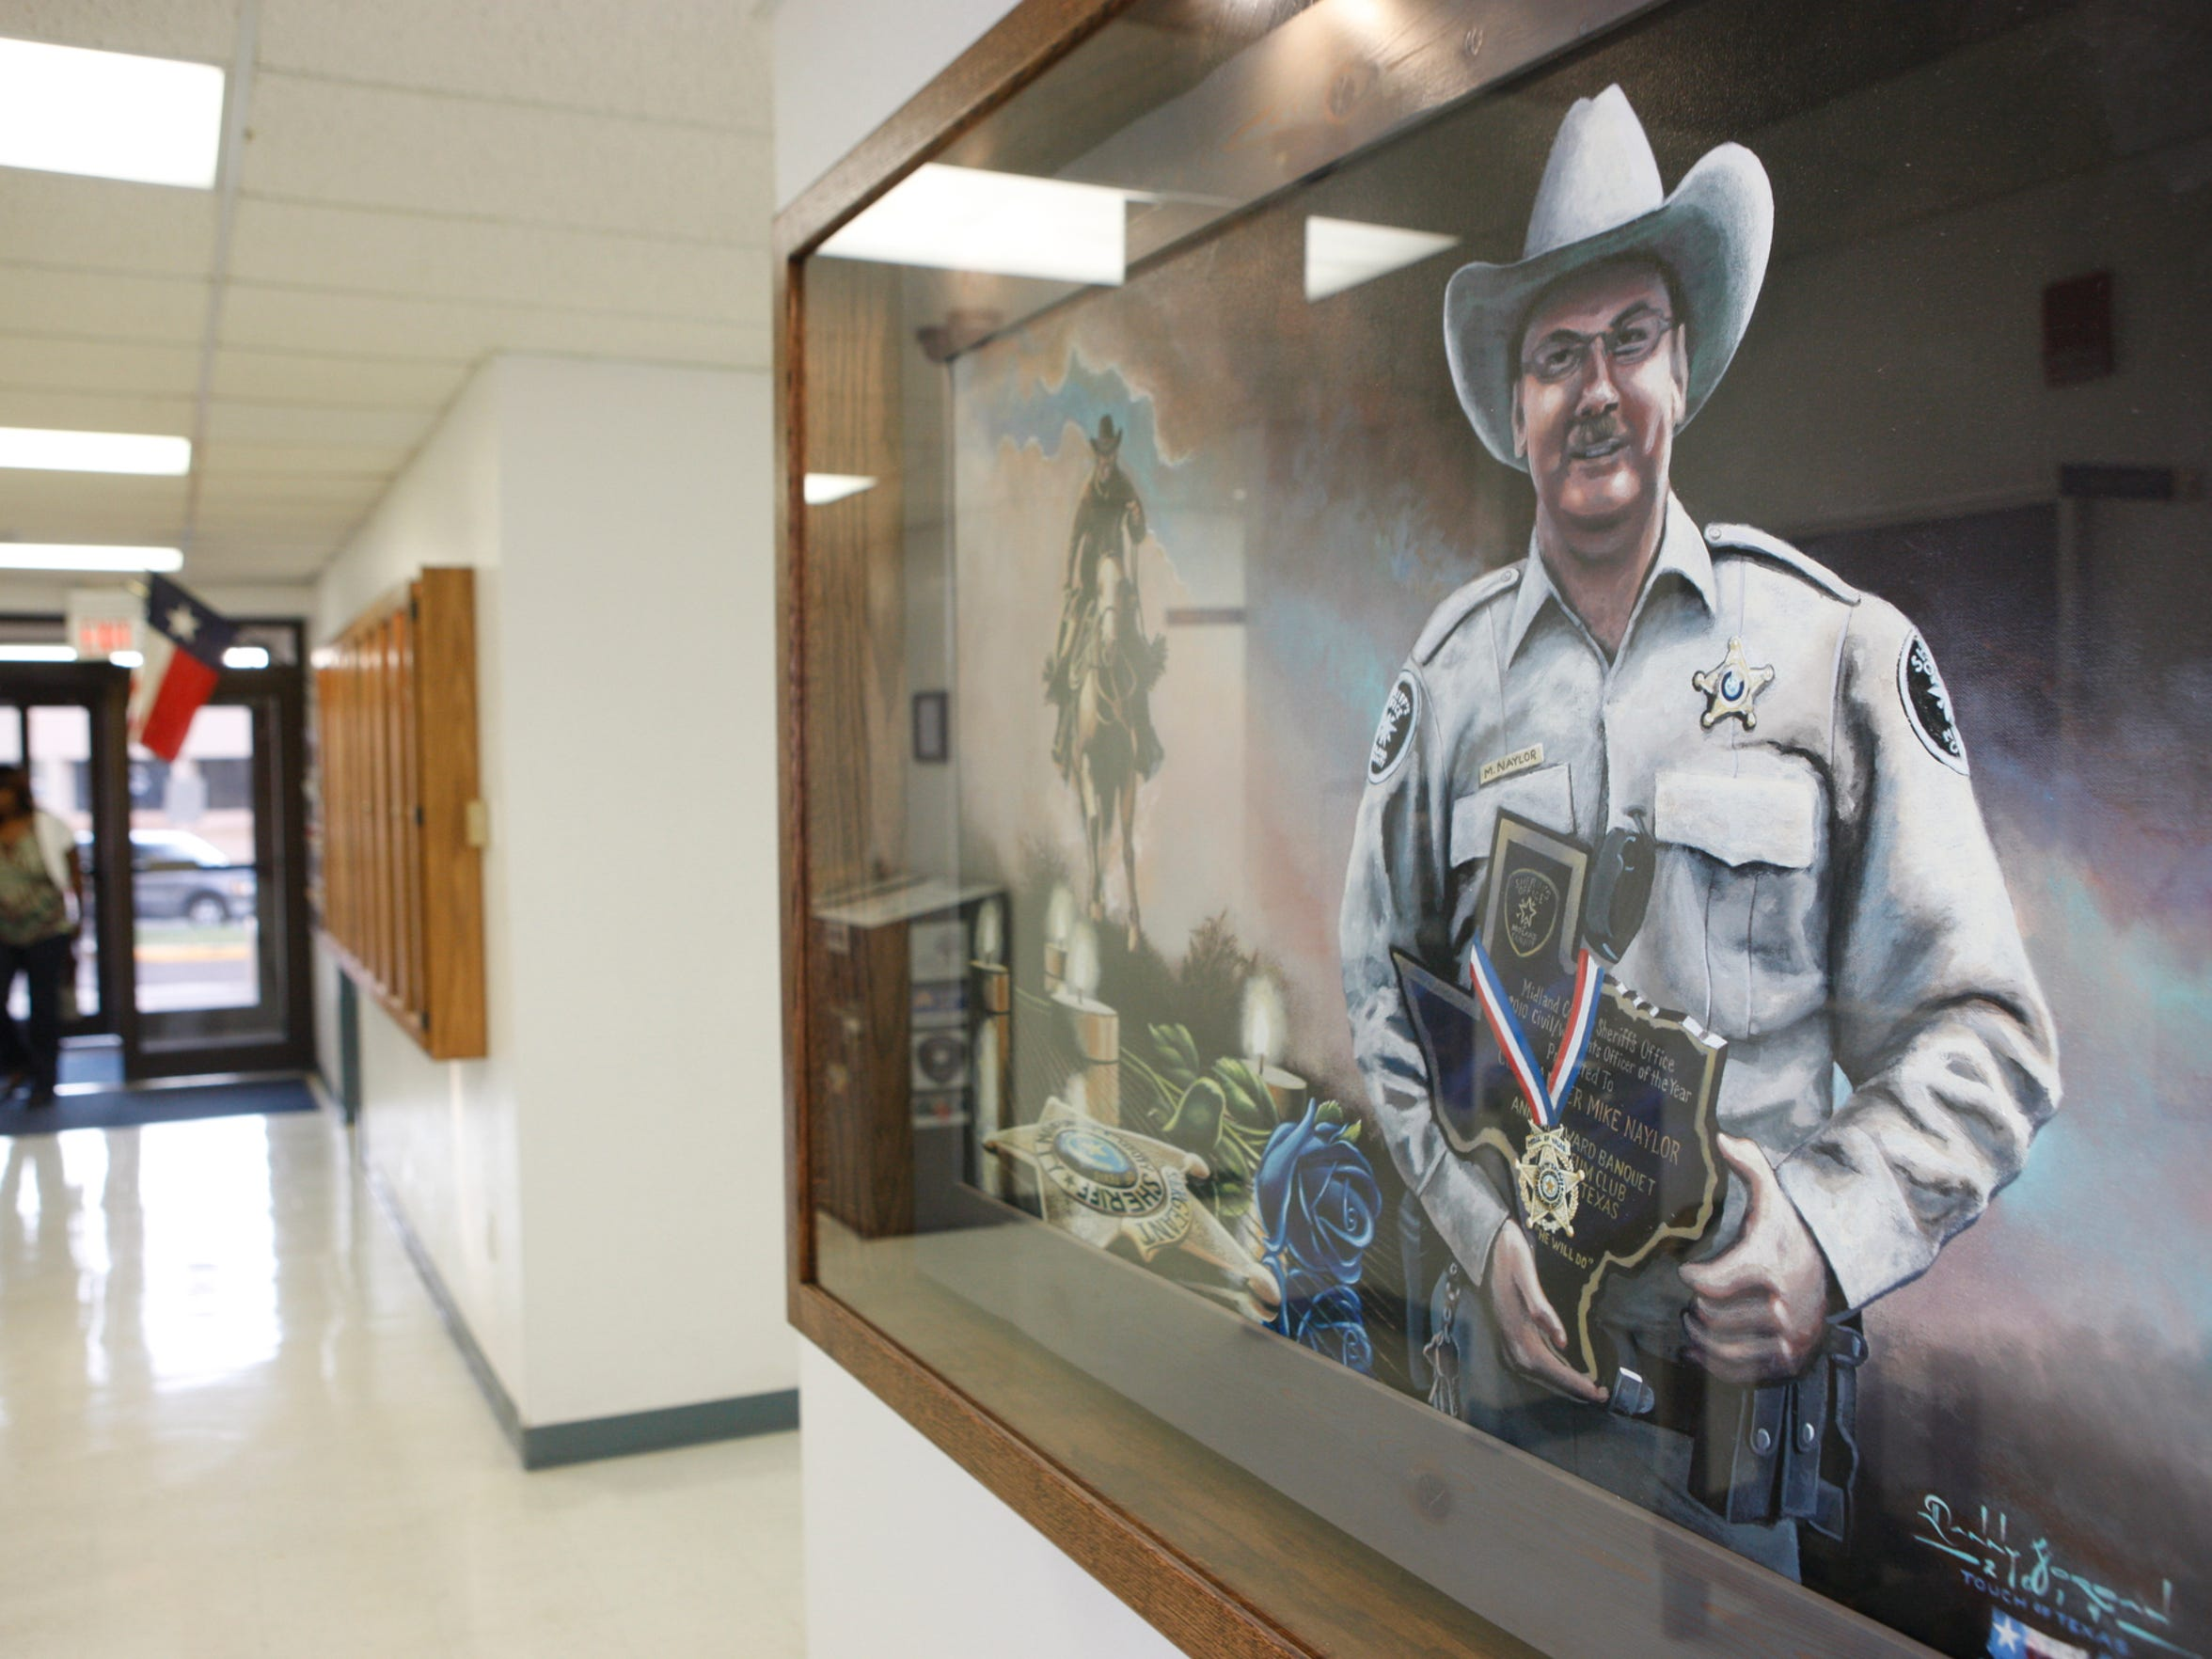 A portrait of Sgt. Michael Naylor hangs in the William Ahders Justice Center that houses the Sheriff's Department in Midland, Texas.